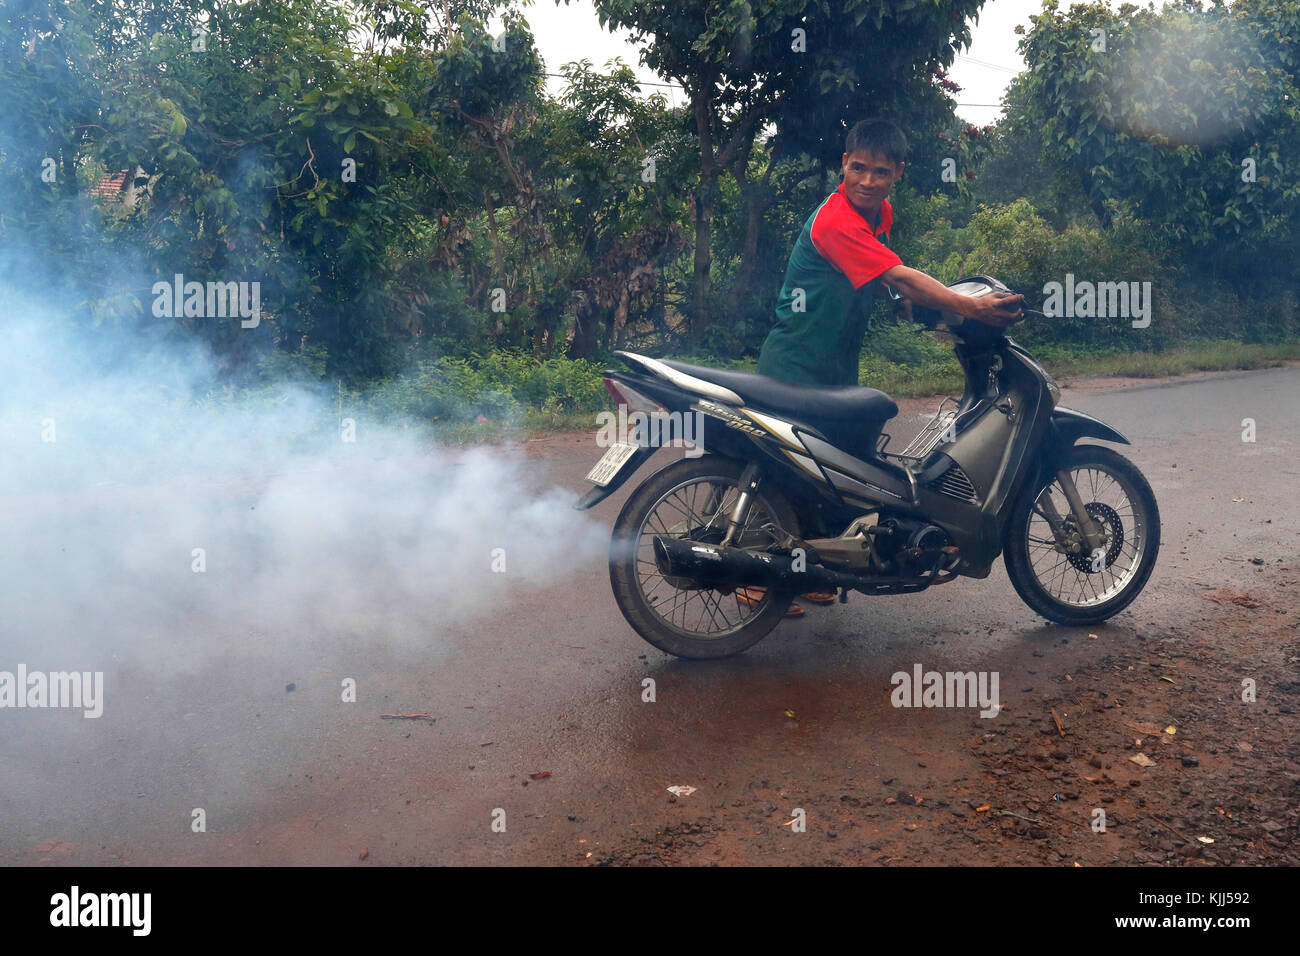 La fumée de moto. La pollution de l'air. Kon Tum. Le Vietnam. Photo Stock